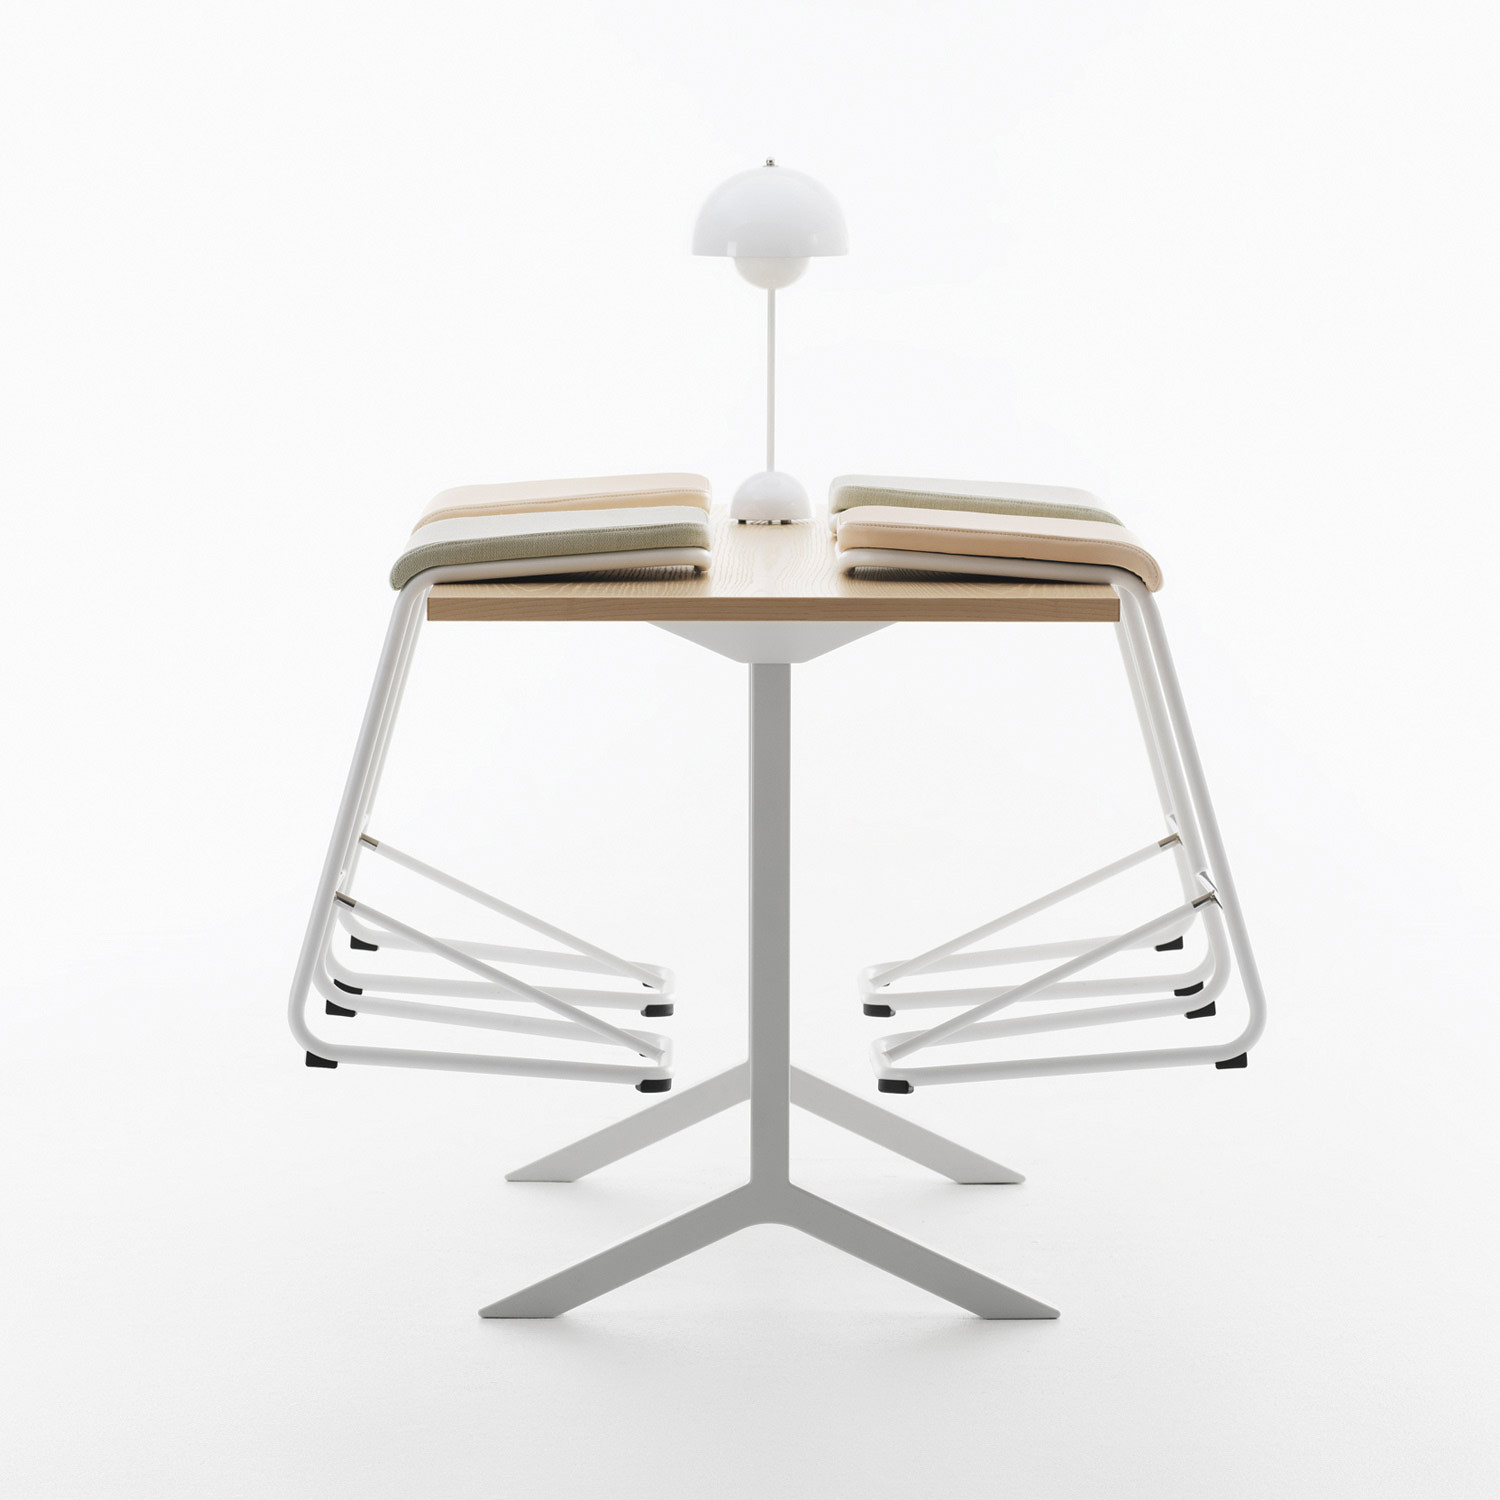 Add Cantilever Stools